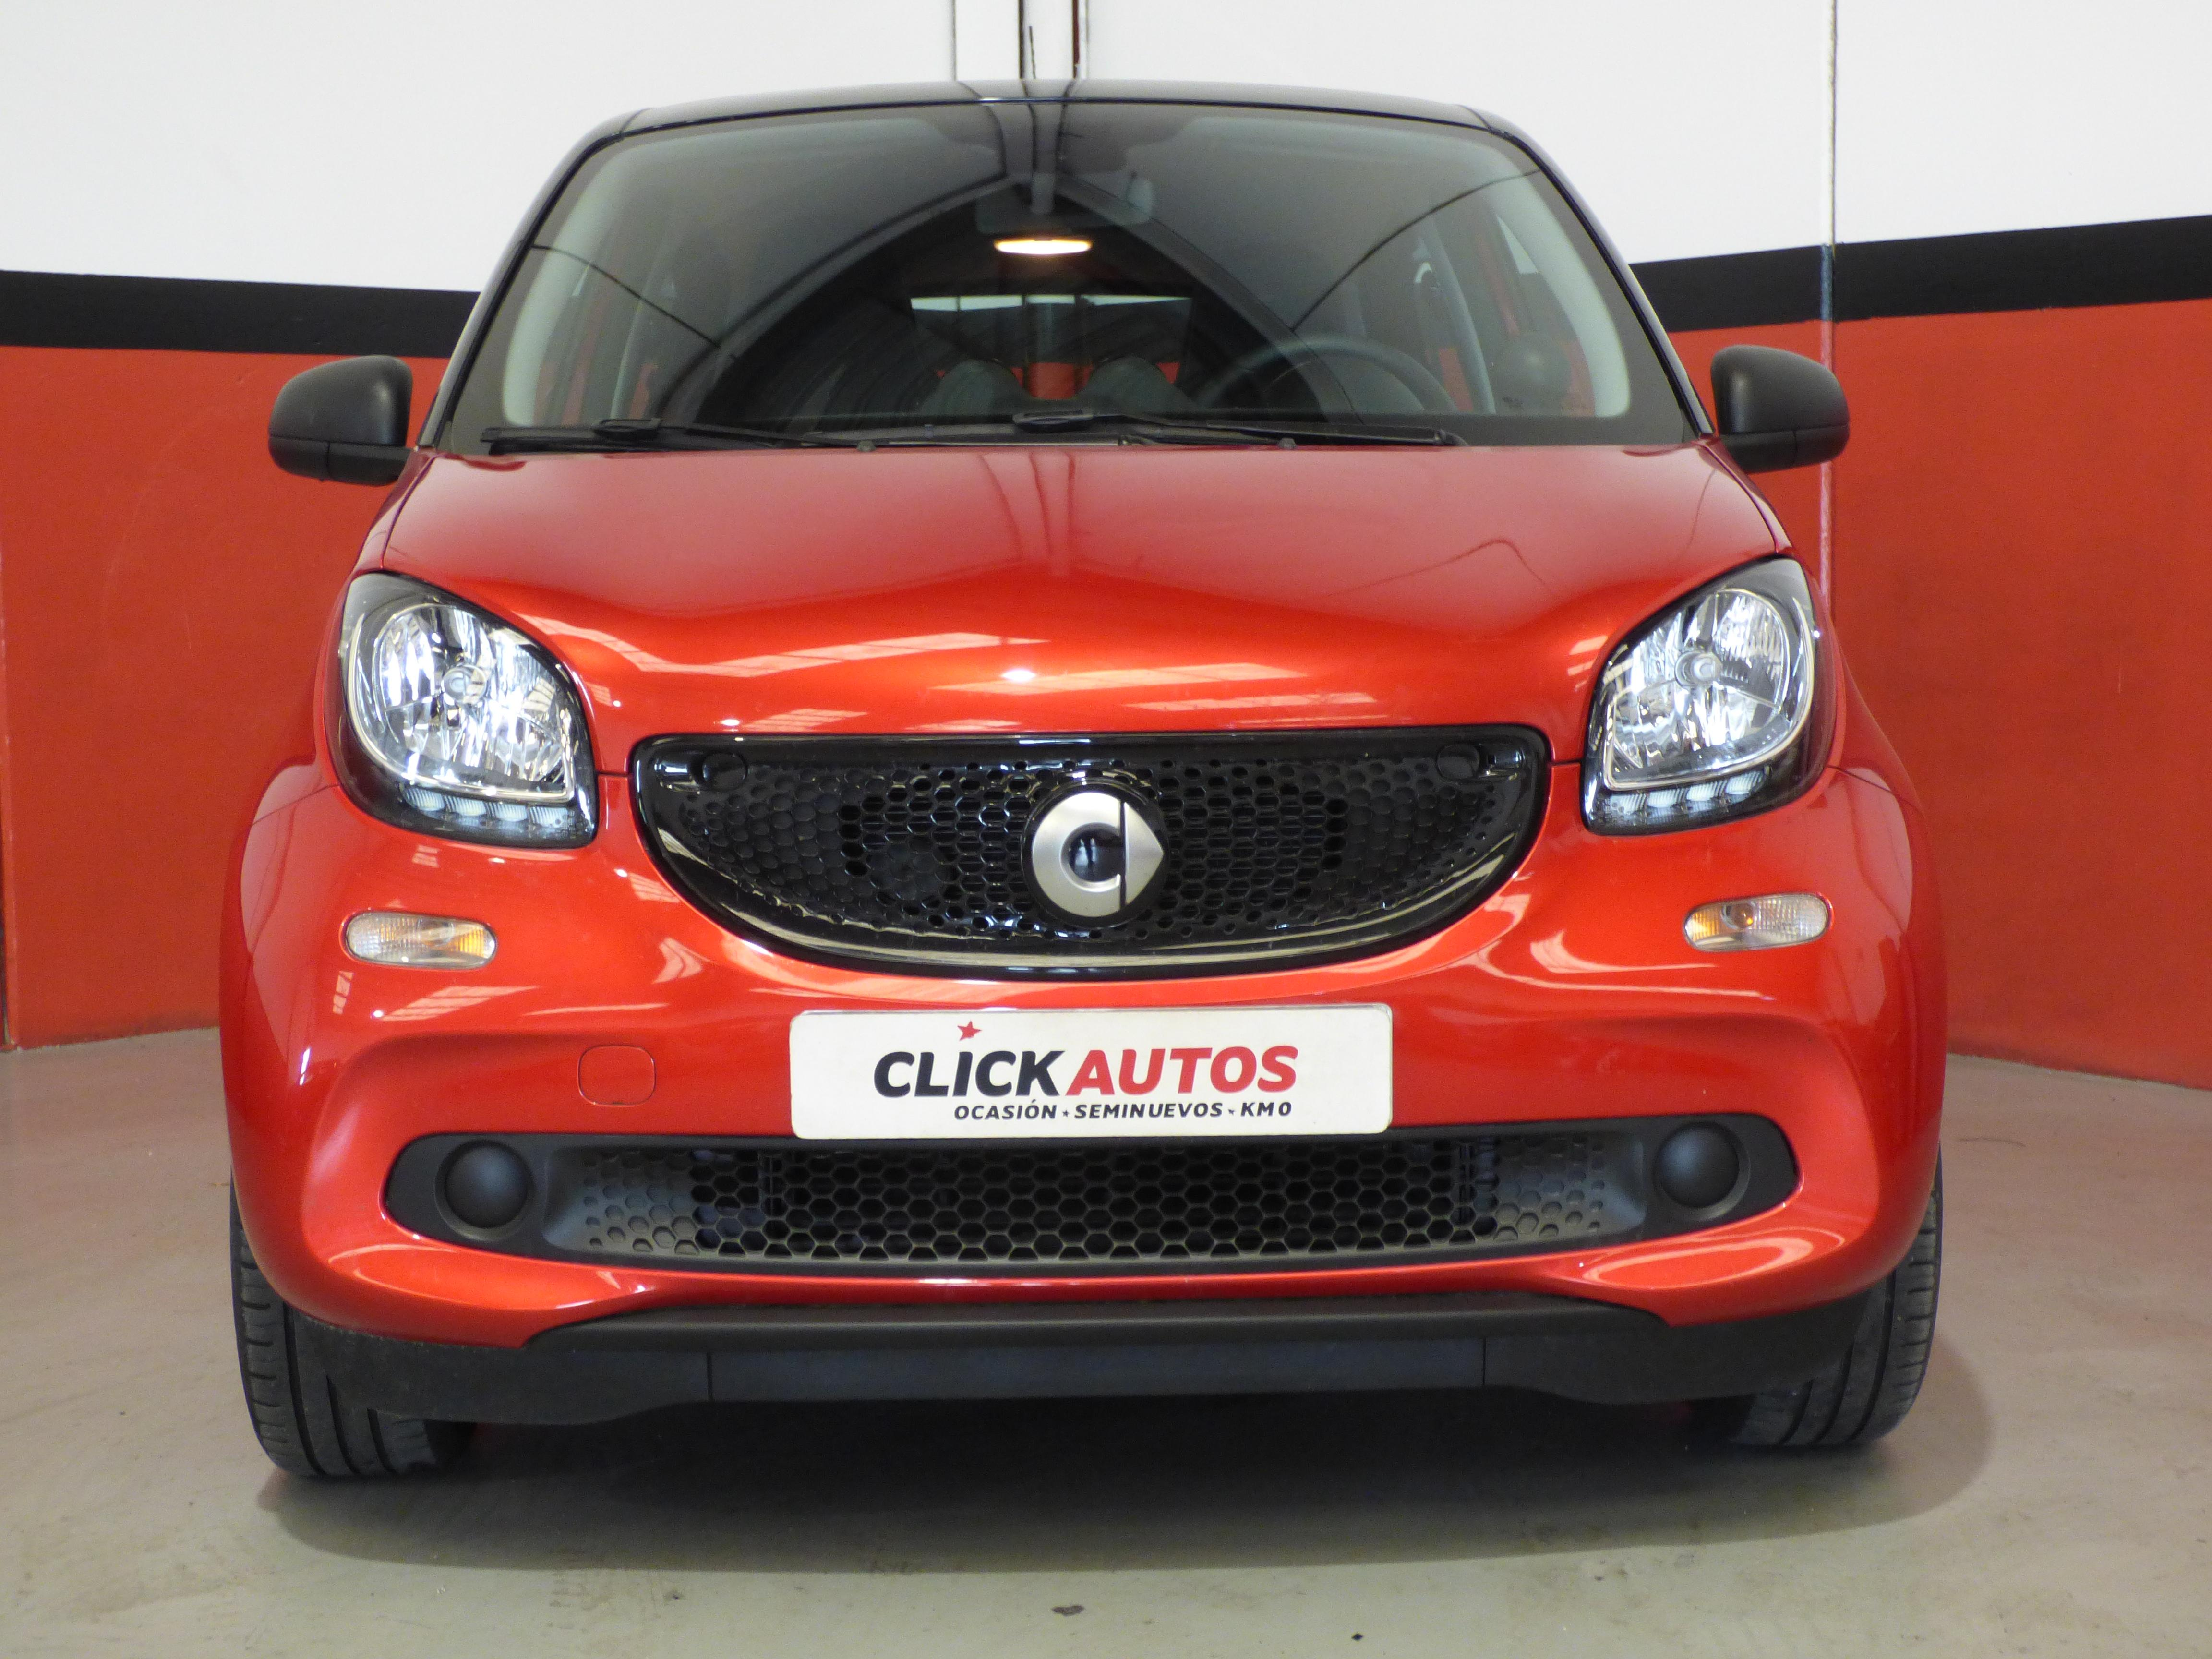 Forfour 0.9 Turbo 90CV Automatico Passion 18